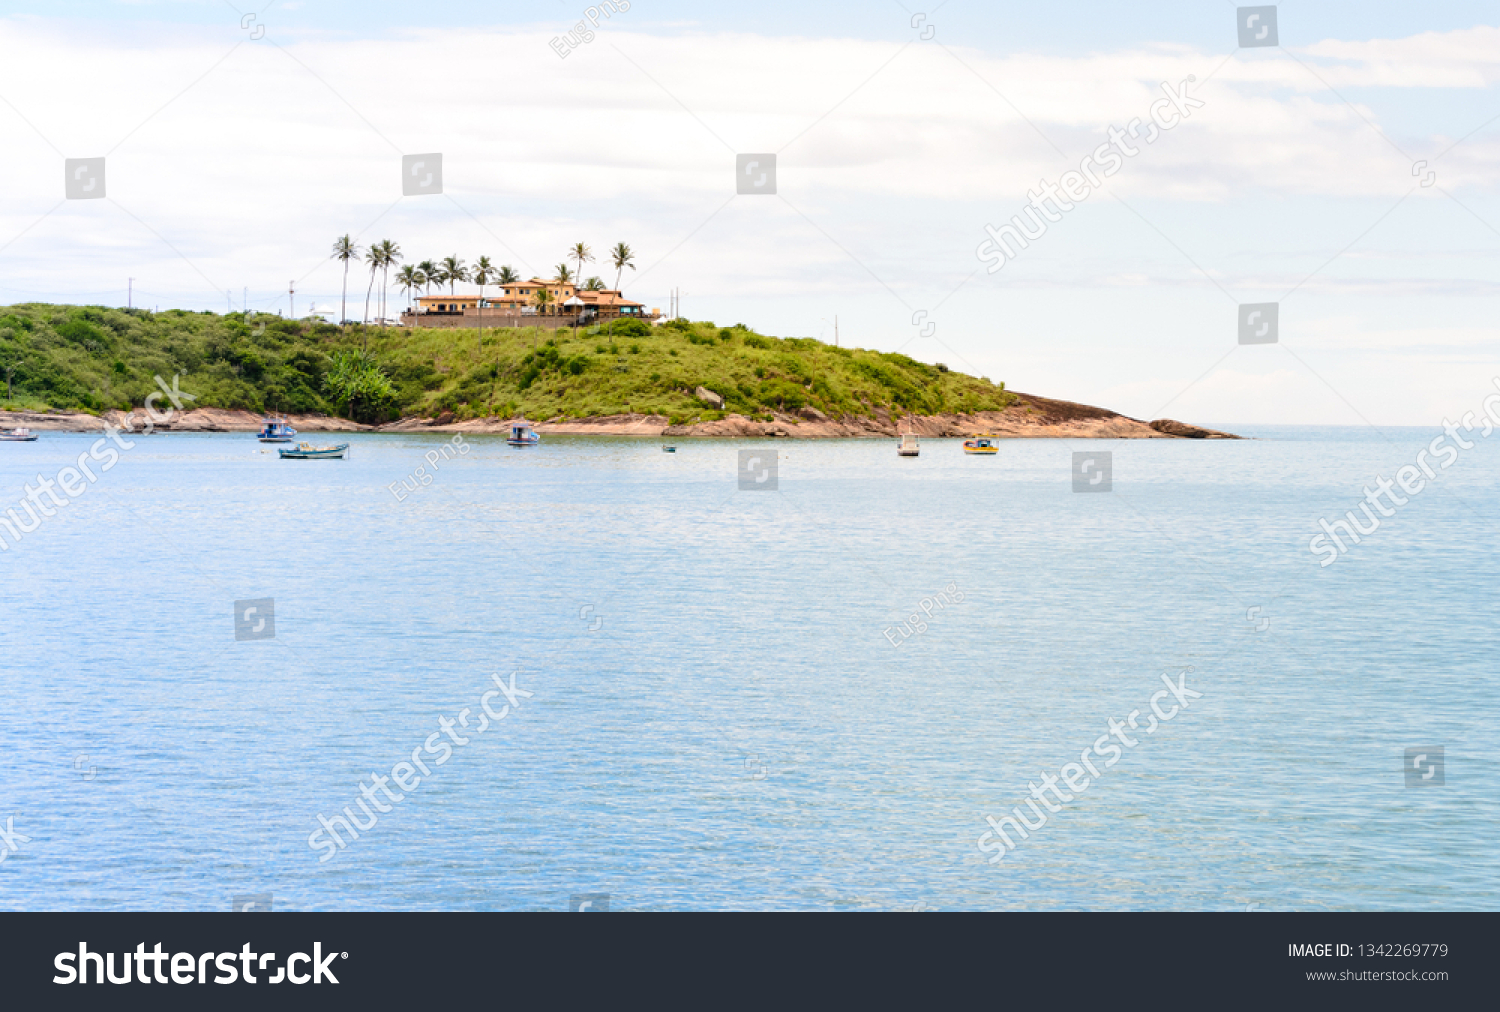 A lovely bay with some little boats and a  sand beach in Meaìpe a small fishing village near Guarapari in the Espirito Santo state in Brazil #1342269779